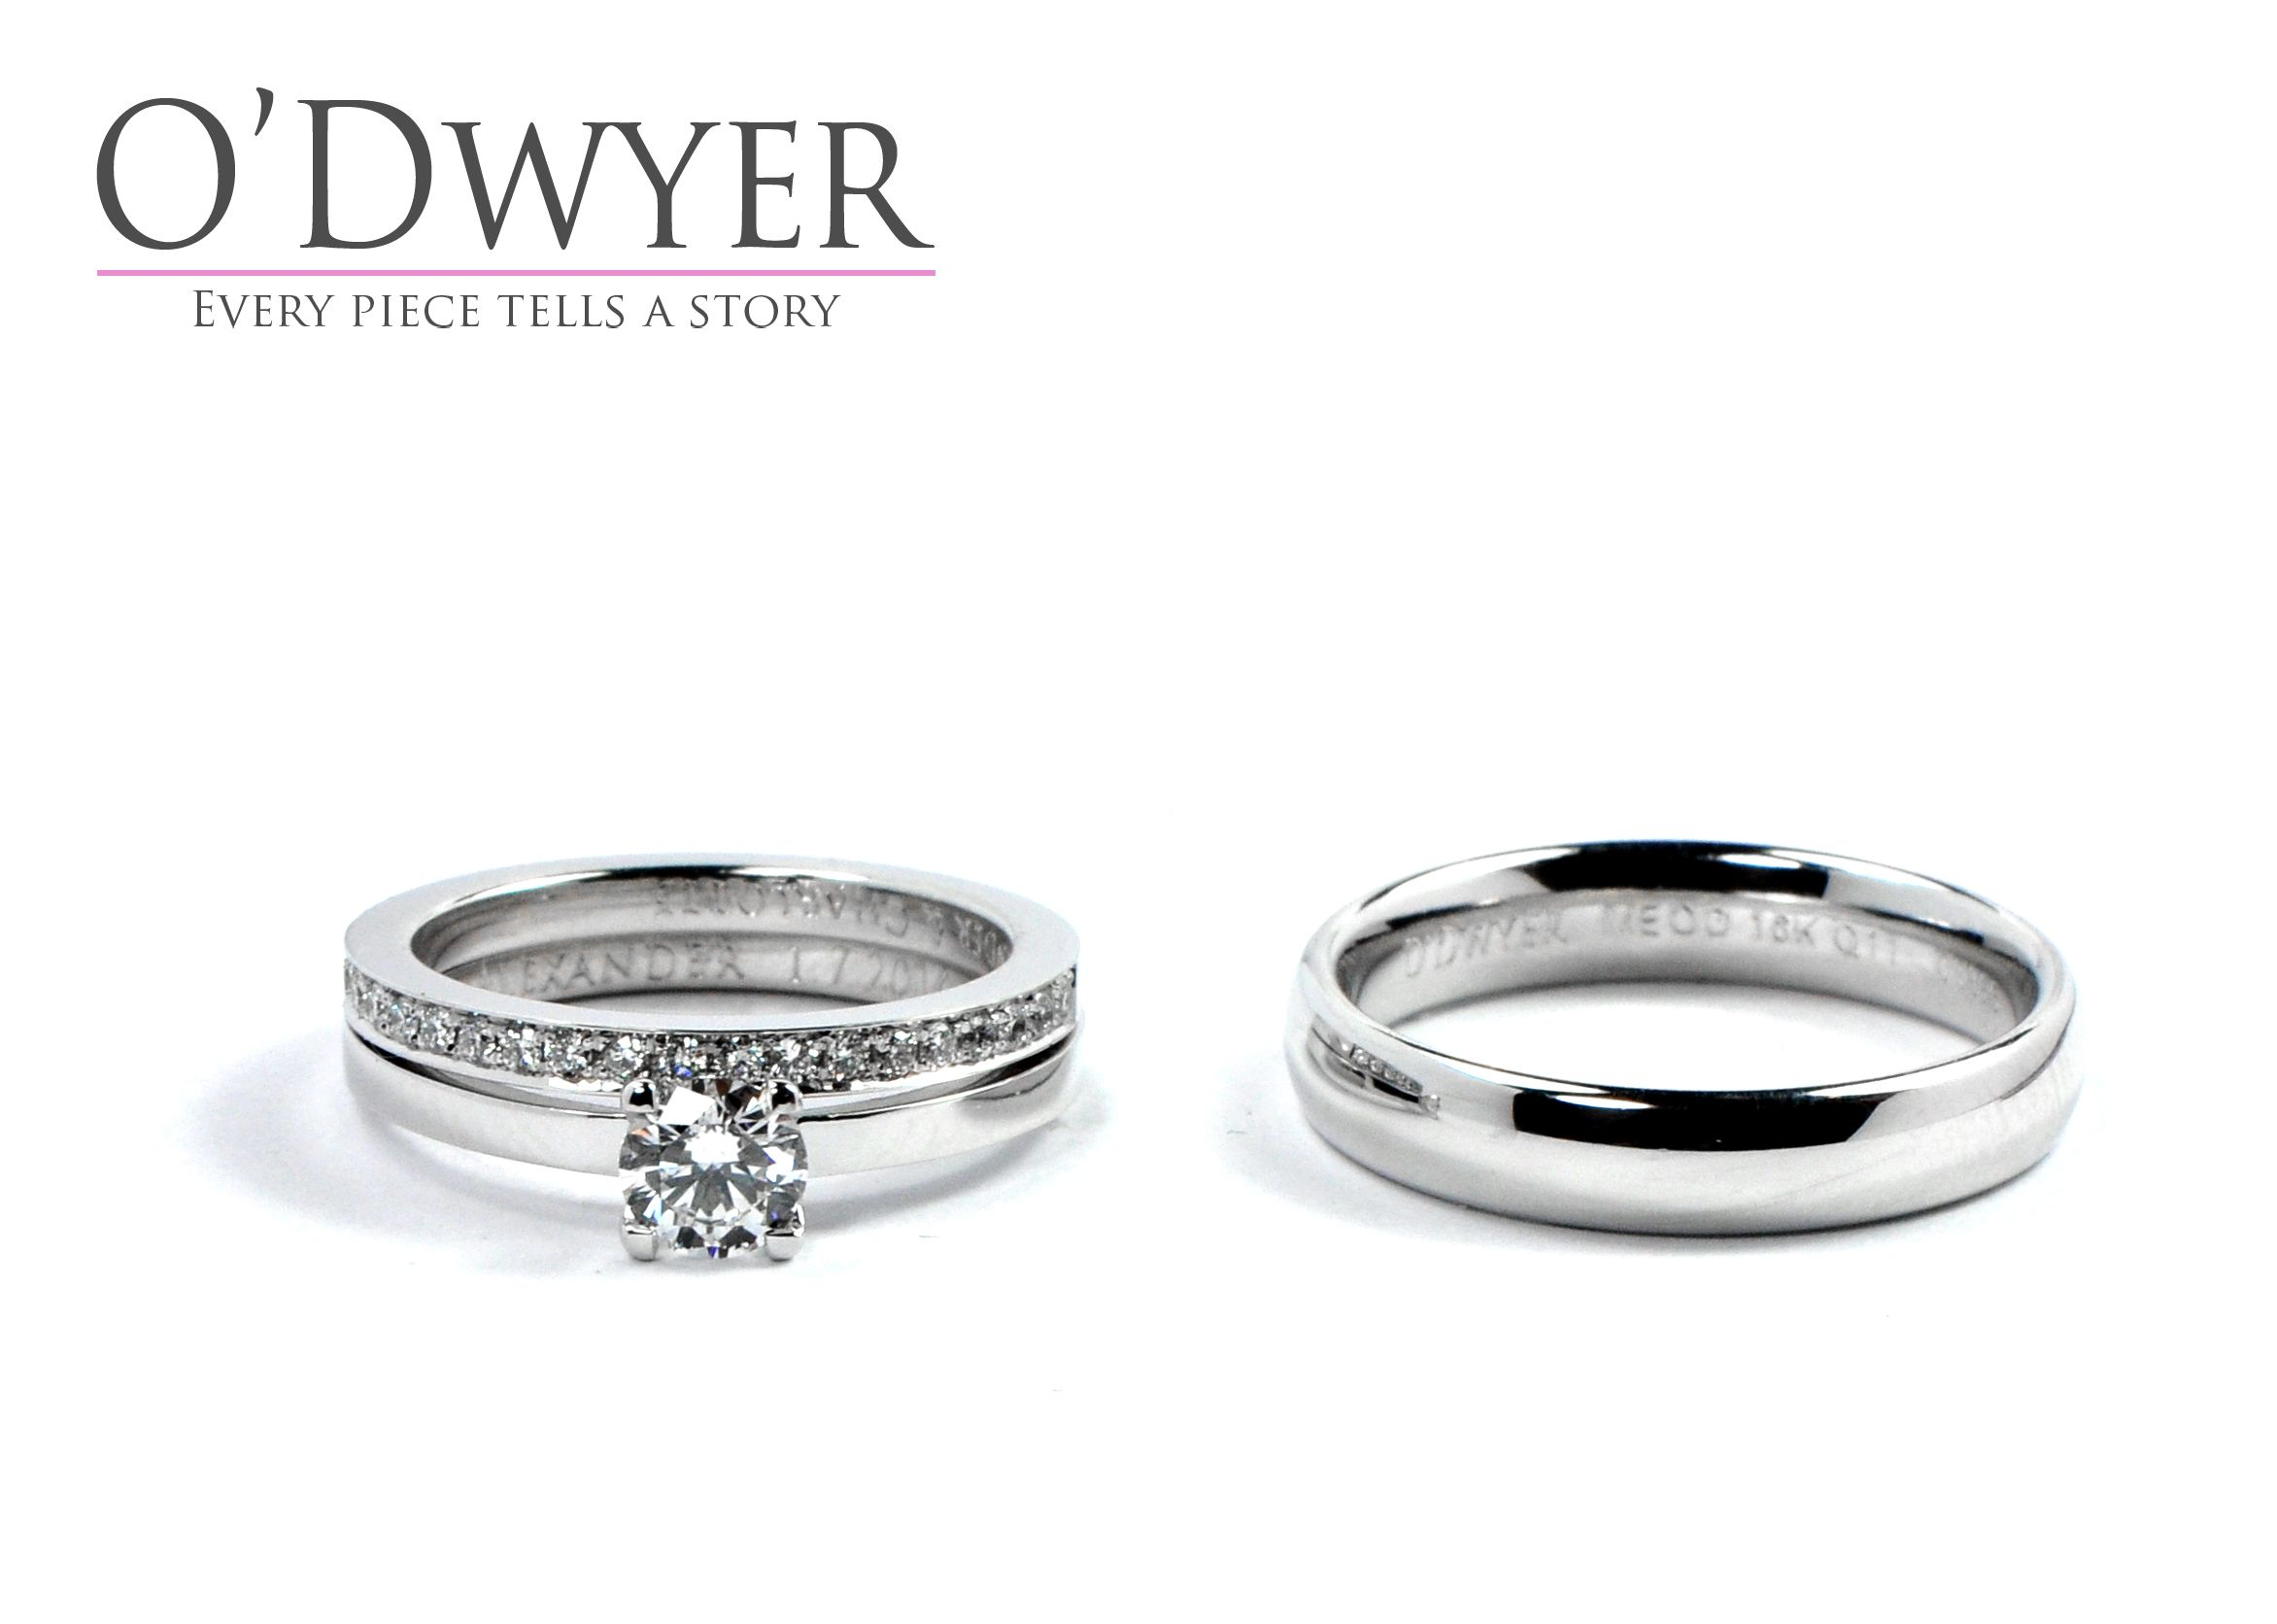 Wedding Rings 18ct White Gold Rings With Diamonds Forlovningsring Vigselring Forlovningsring Vigselring Smycken